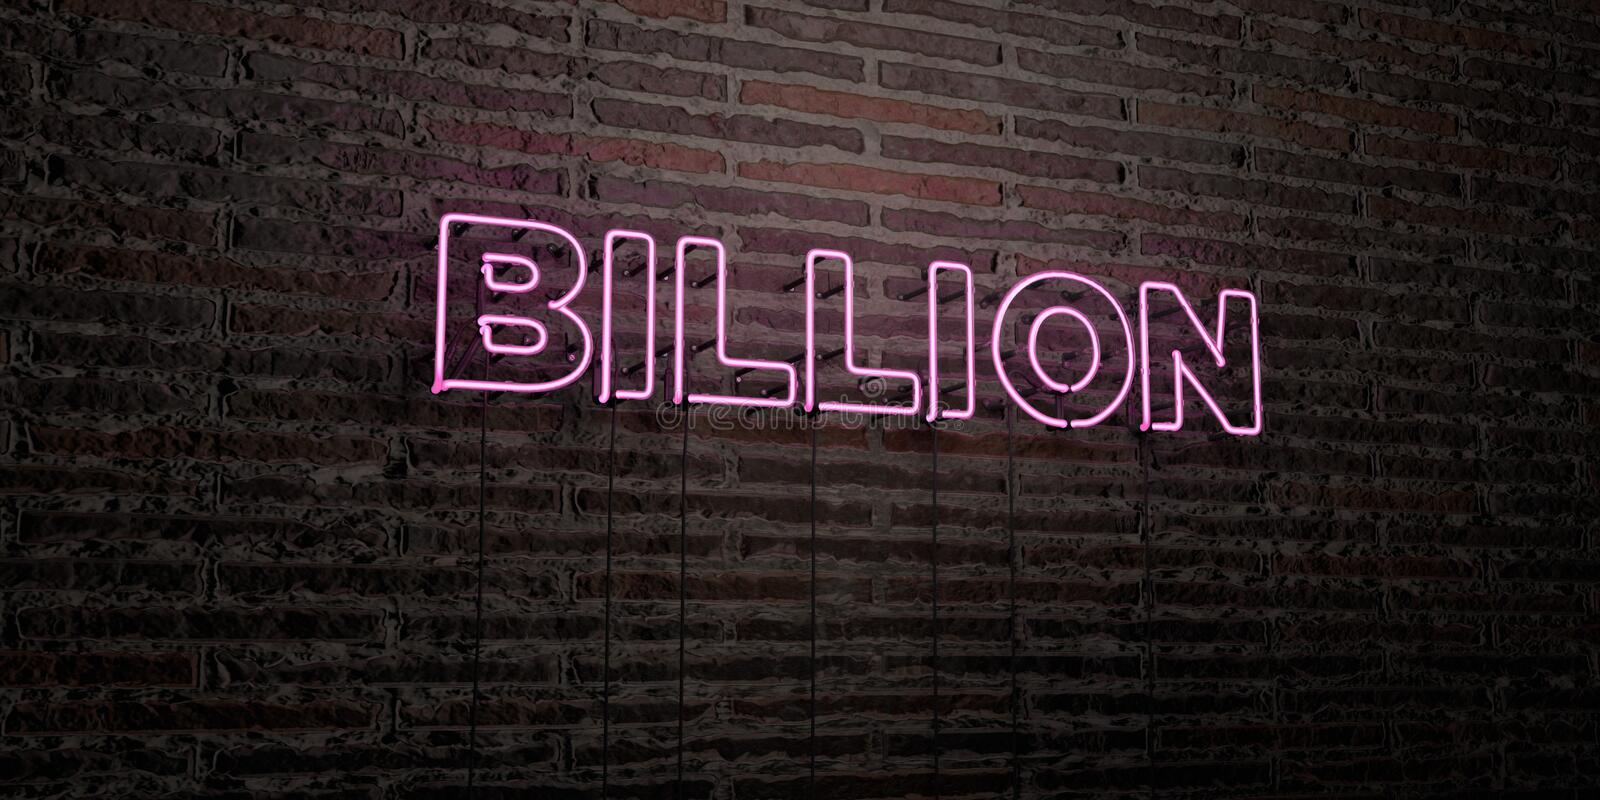 BILLION -Realistic Neon Sign on Brick Wall background - 3D rendered royalty free stock image stock illustration